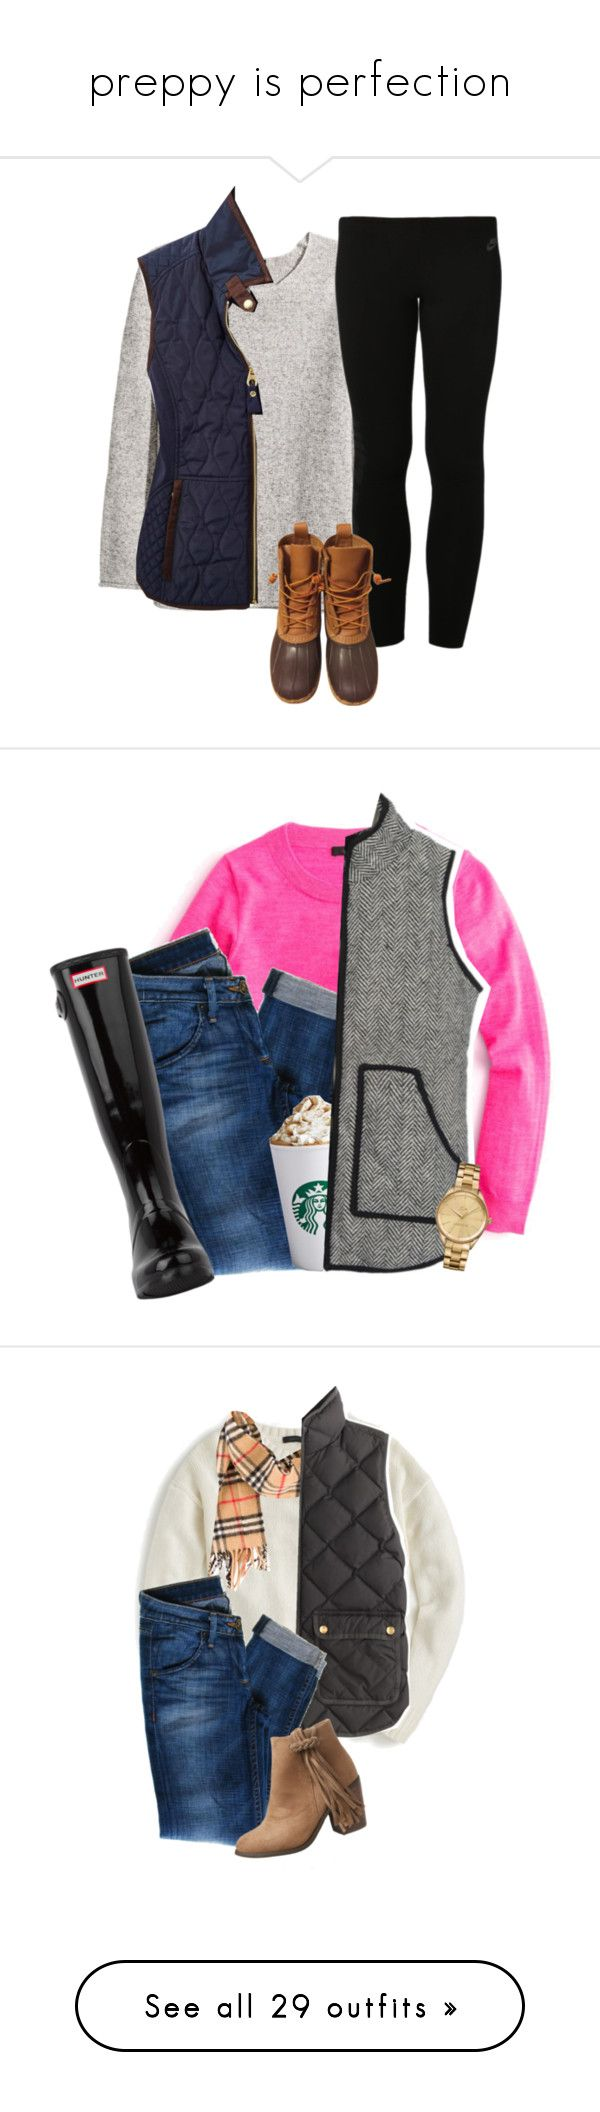 """""""preppy is perfection"""" by perfecly-equestrian ❤ liked on Polyvore featuring H&M, Joules, NIKE, L.L.Bean, women's clothing, women's fashion, women, female, woman and misses"""